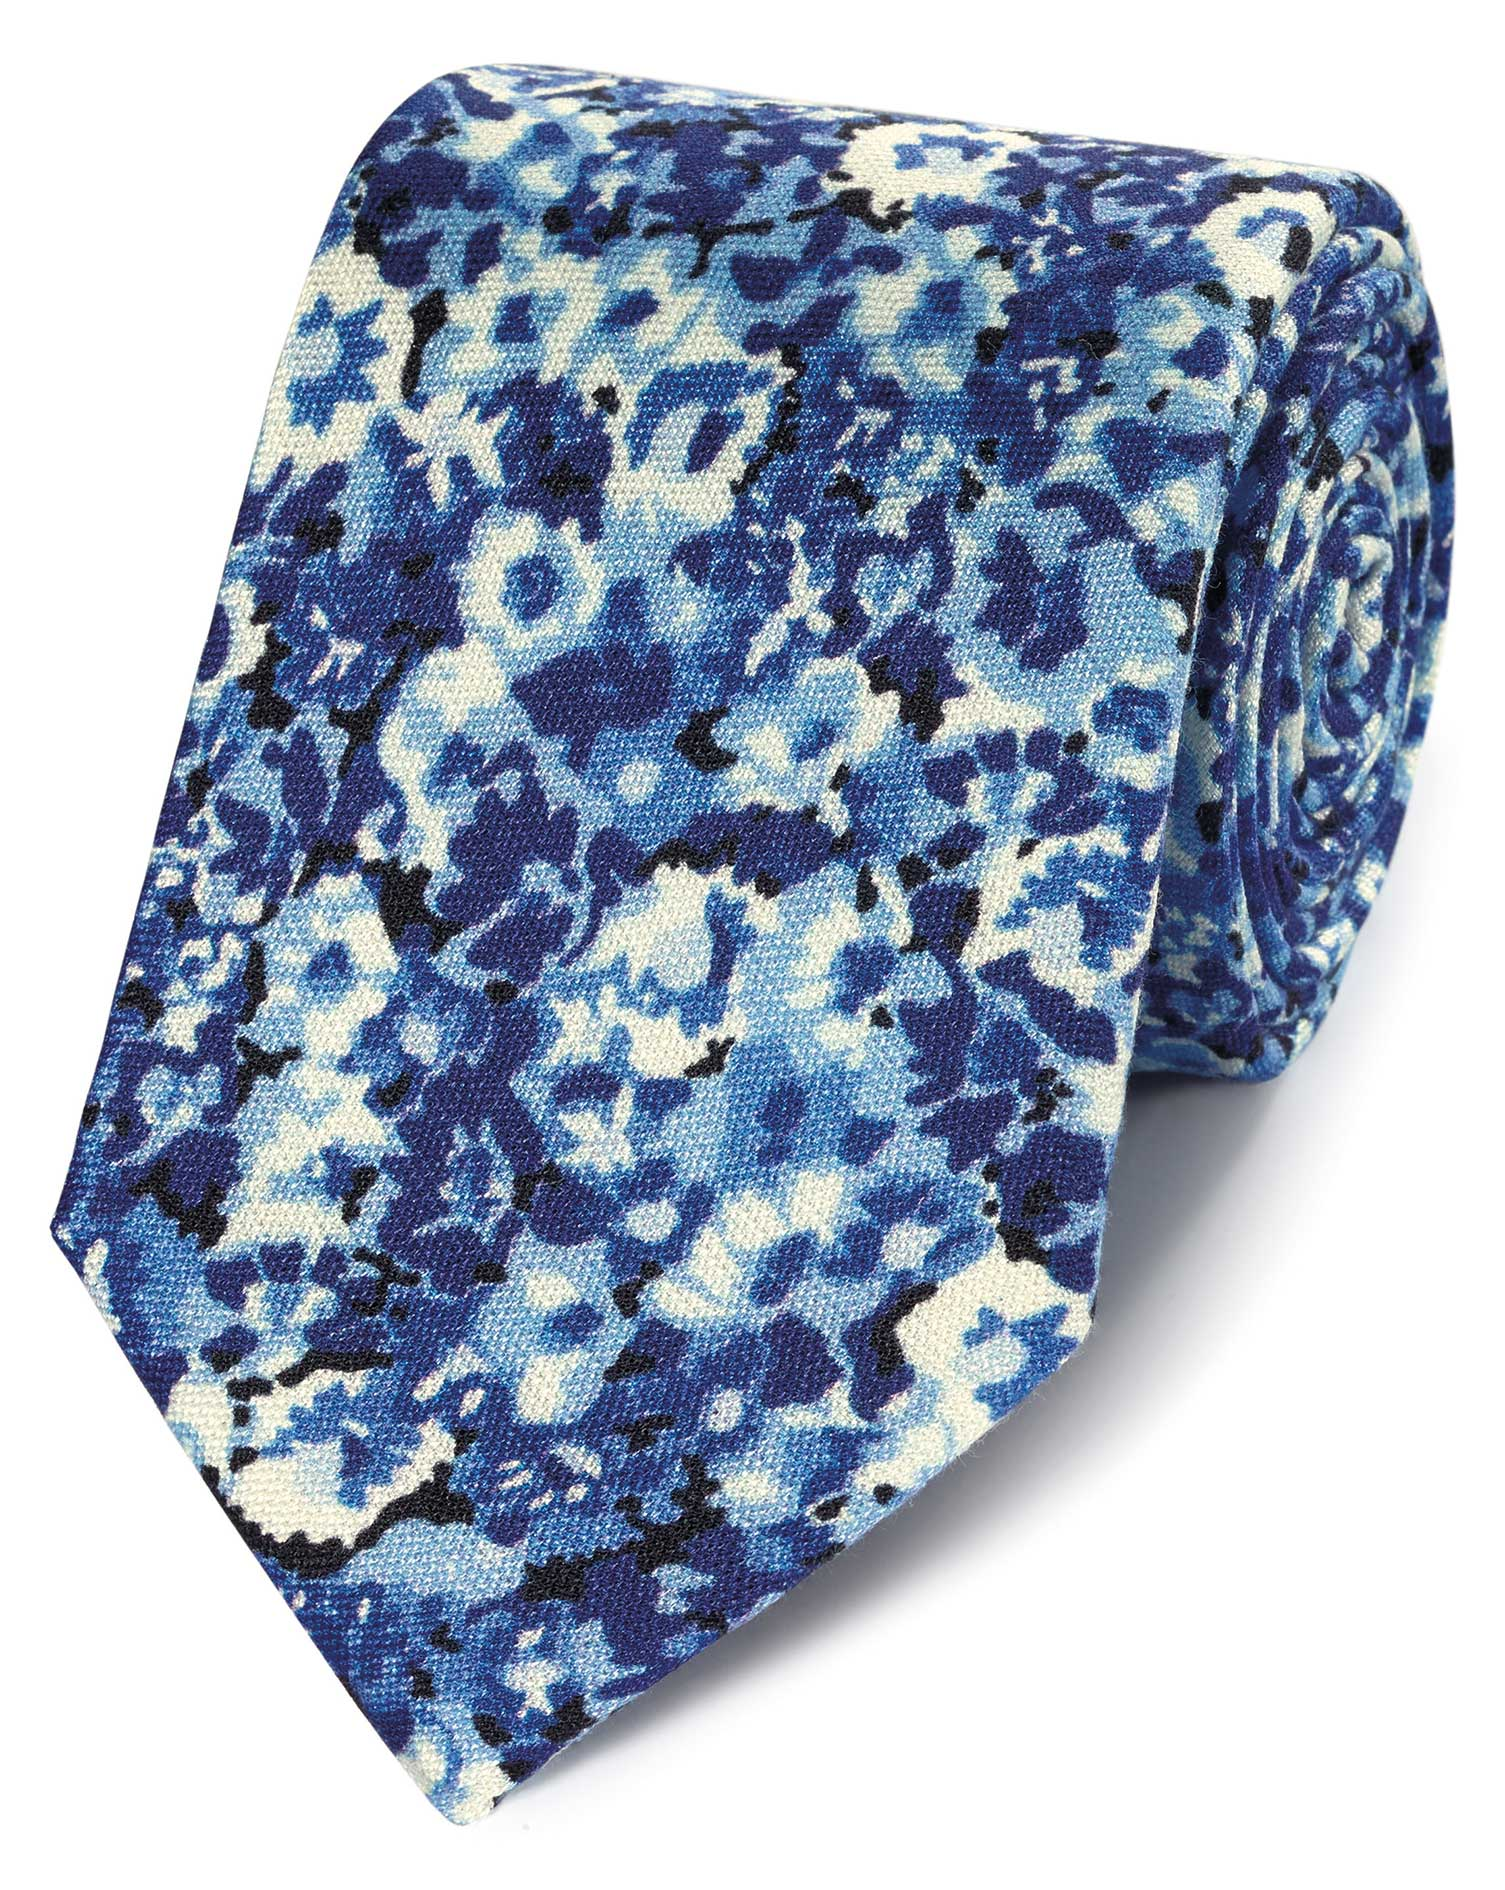 Blue Floral Cotton Silk Printed Classic Tie Size OSFA by Charles Tyrwhitt